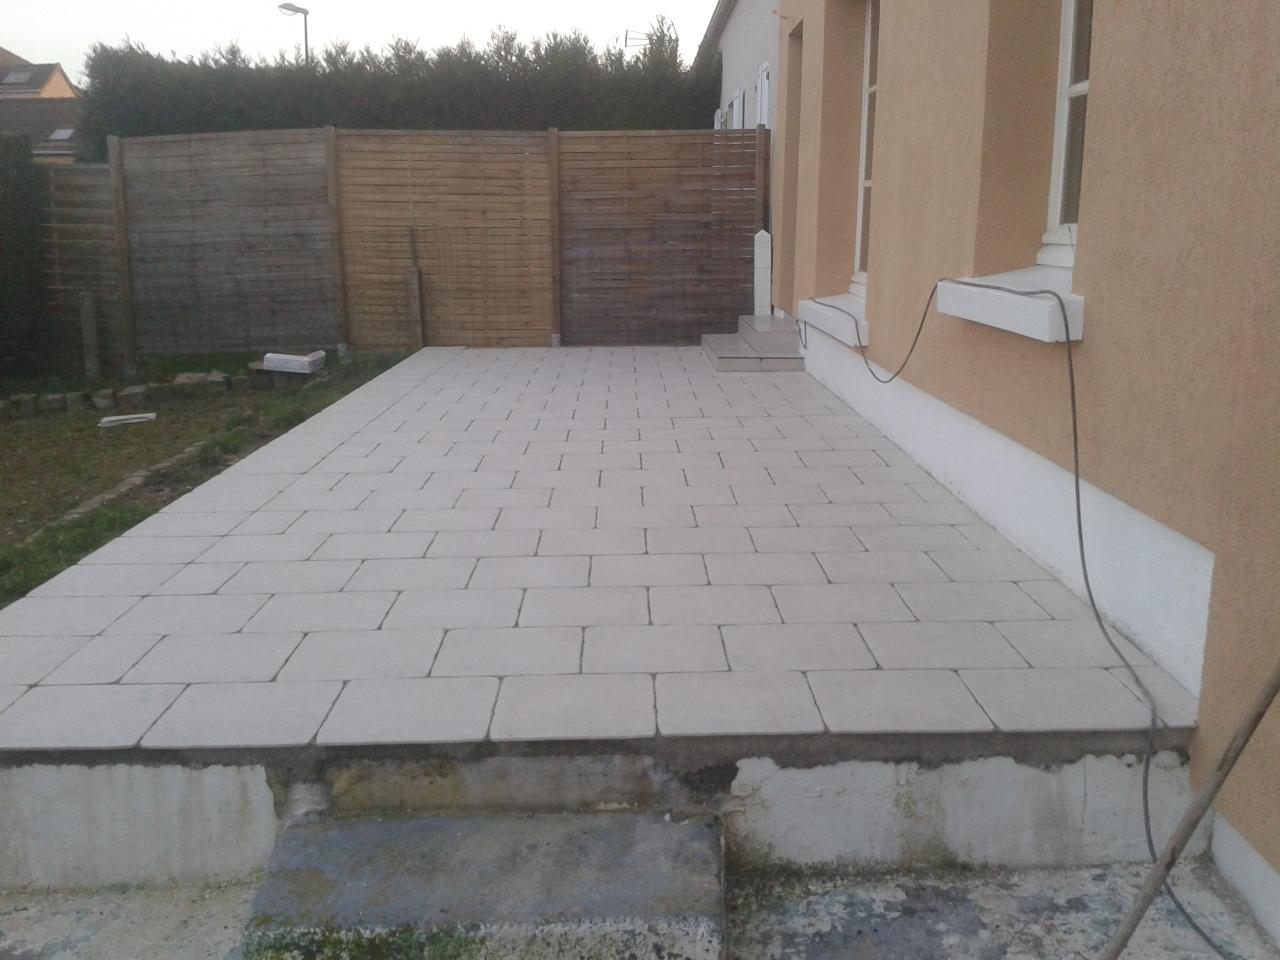 Terrasse carrel e sur dalle b ton for Poser carrelage terrasse dalle beton